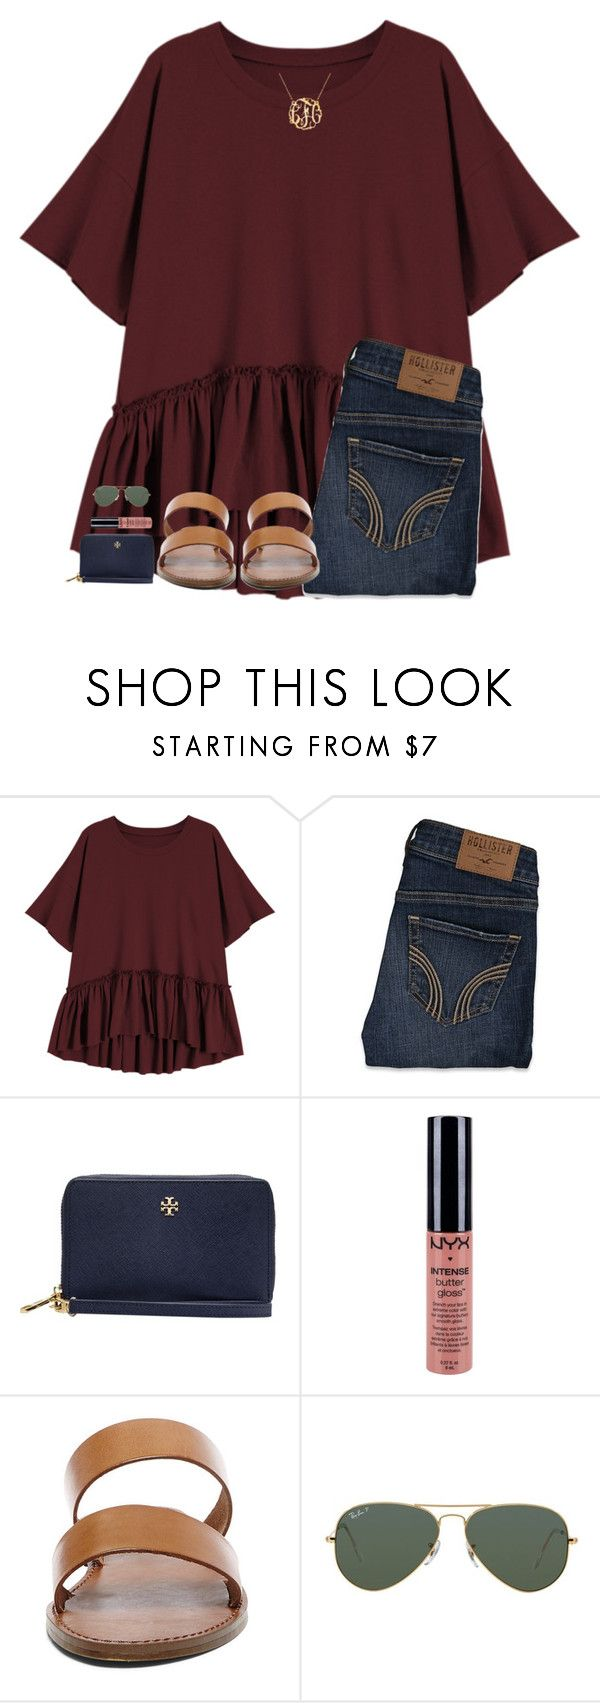 """""""rlly not ready for school"""" by hgw8503 ❤ liked on Polyvore featuring Hollister Co., Tory Burch, NYX, Steve Madden and Ray-Ban"""